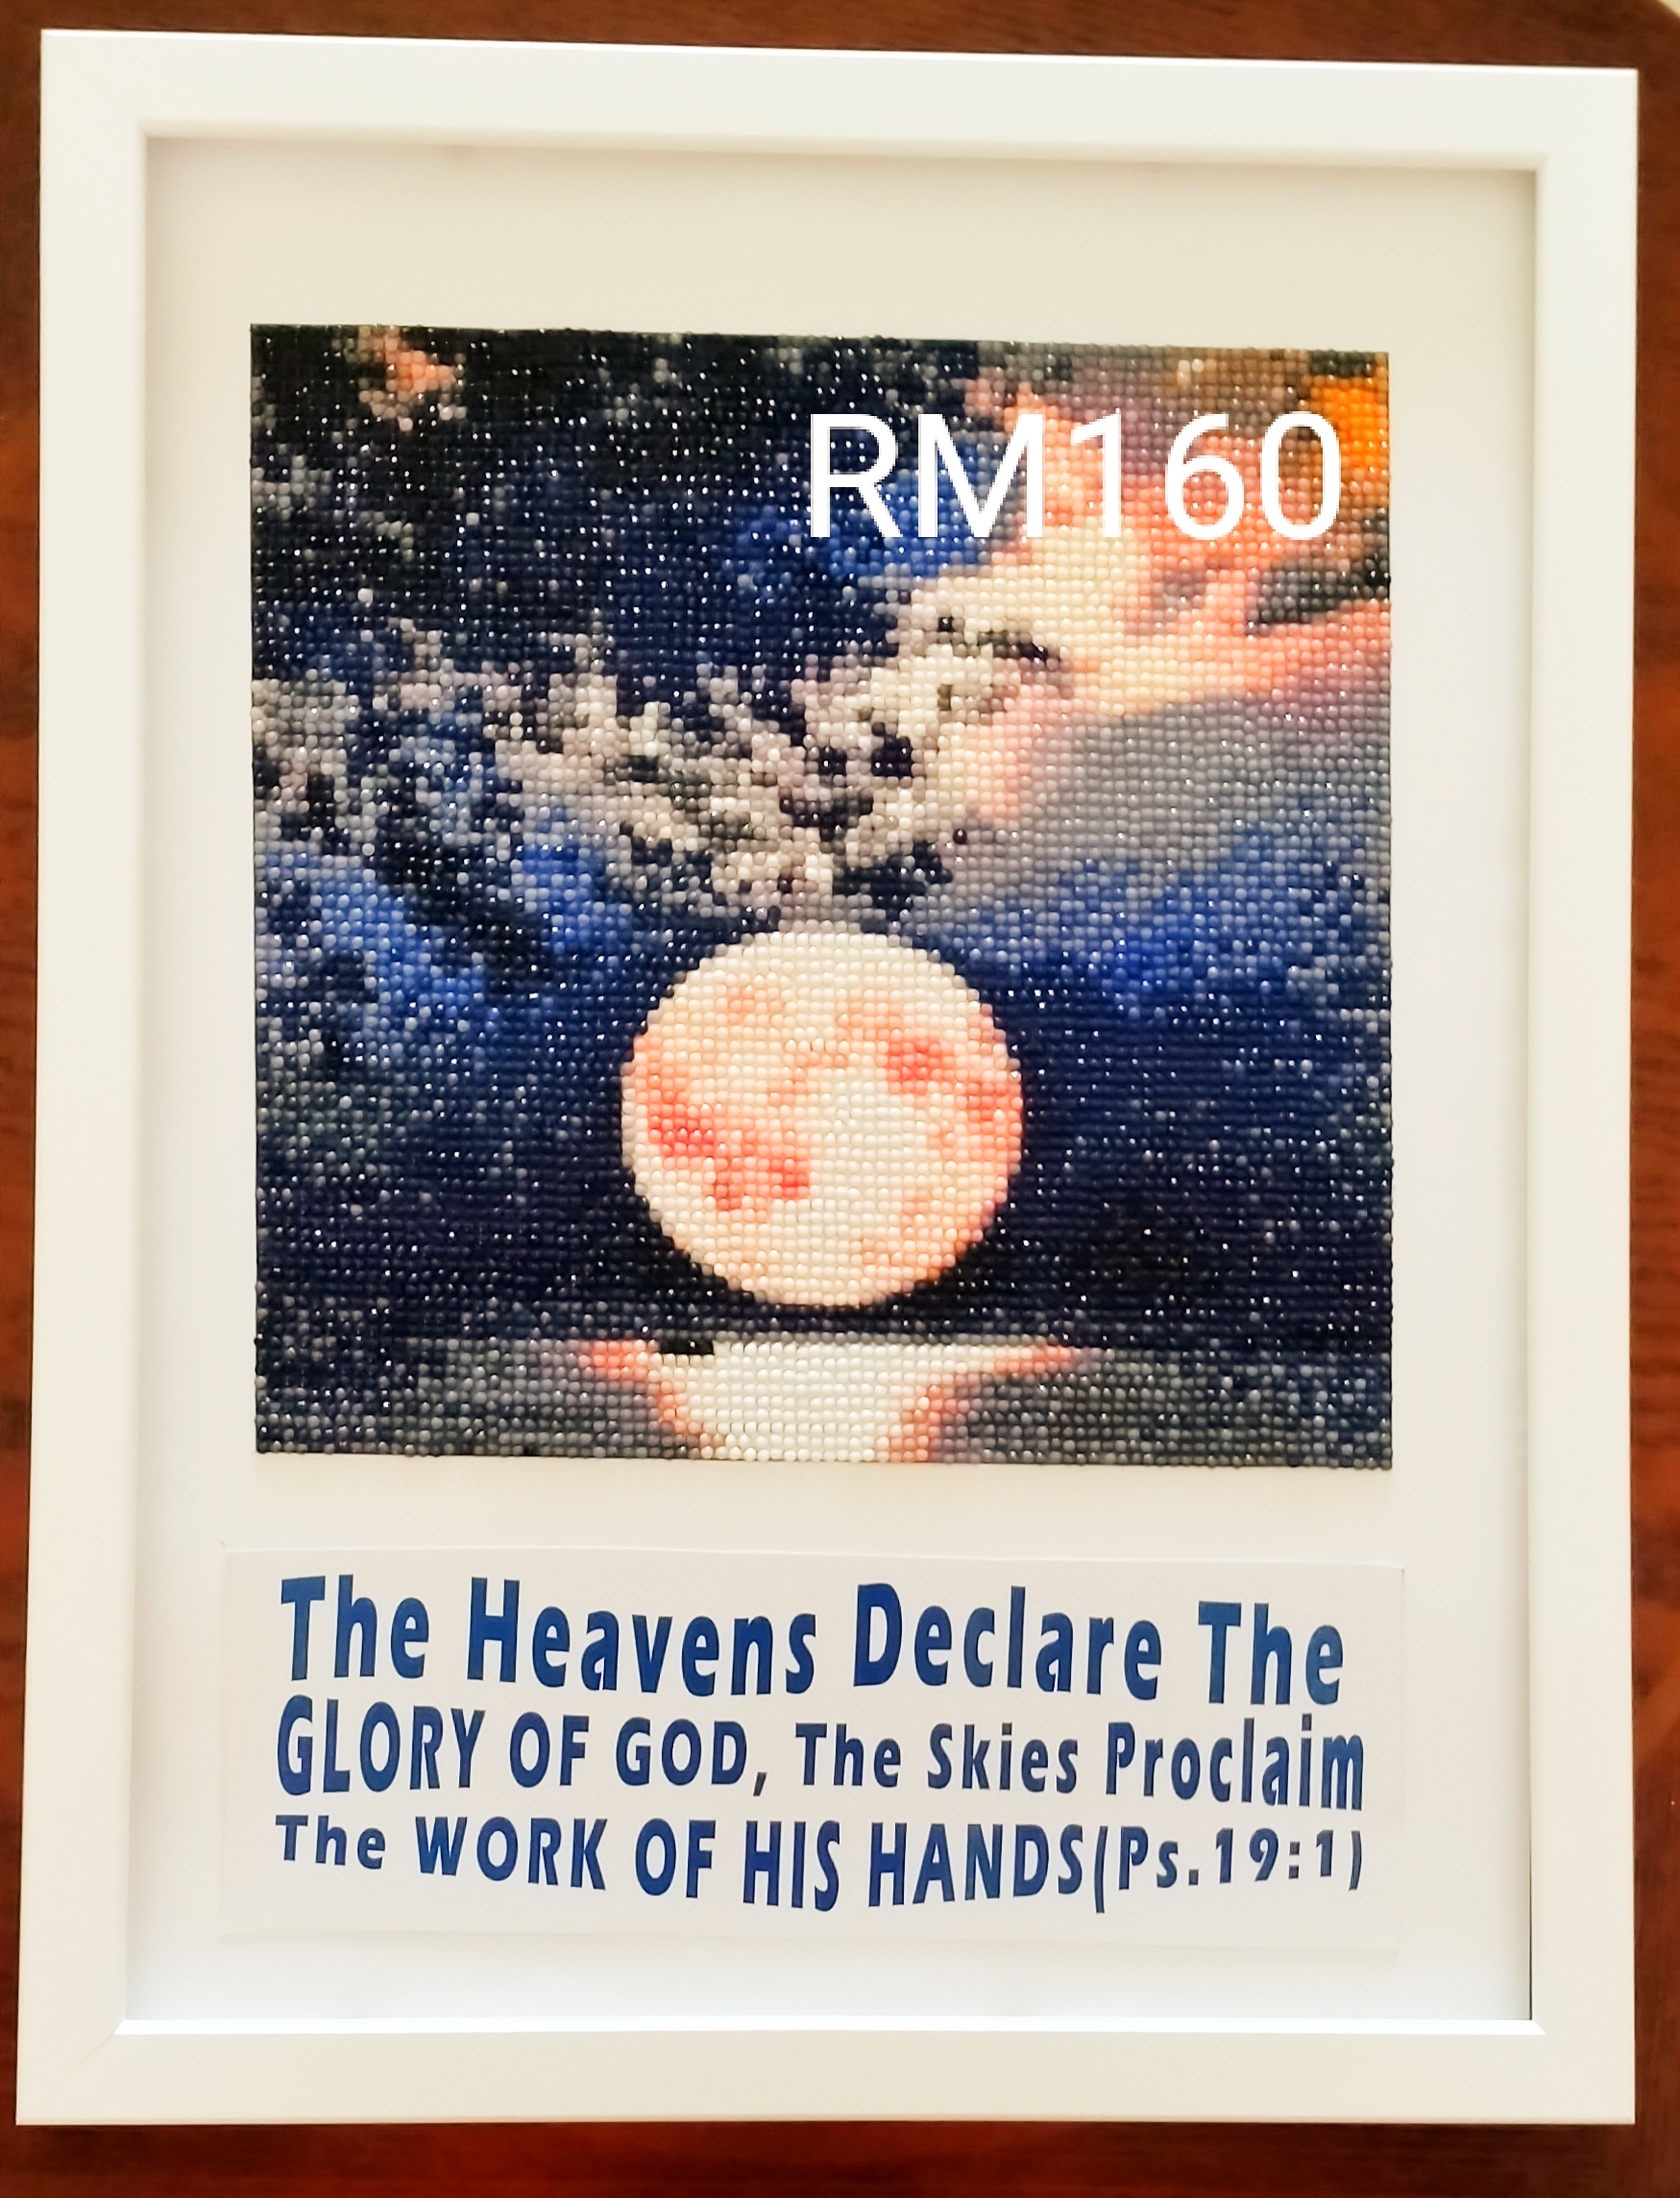 MOON WITH BIBLE VERSE